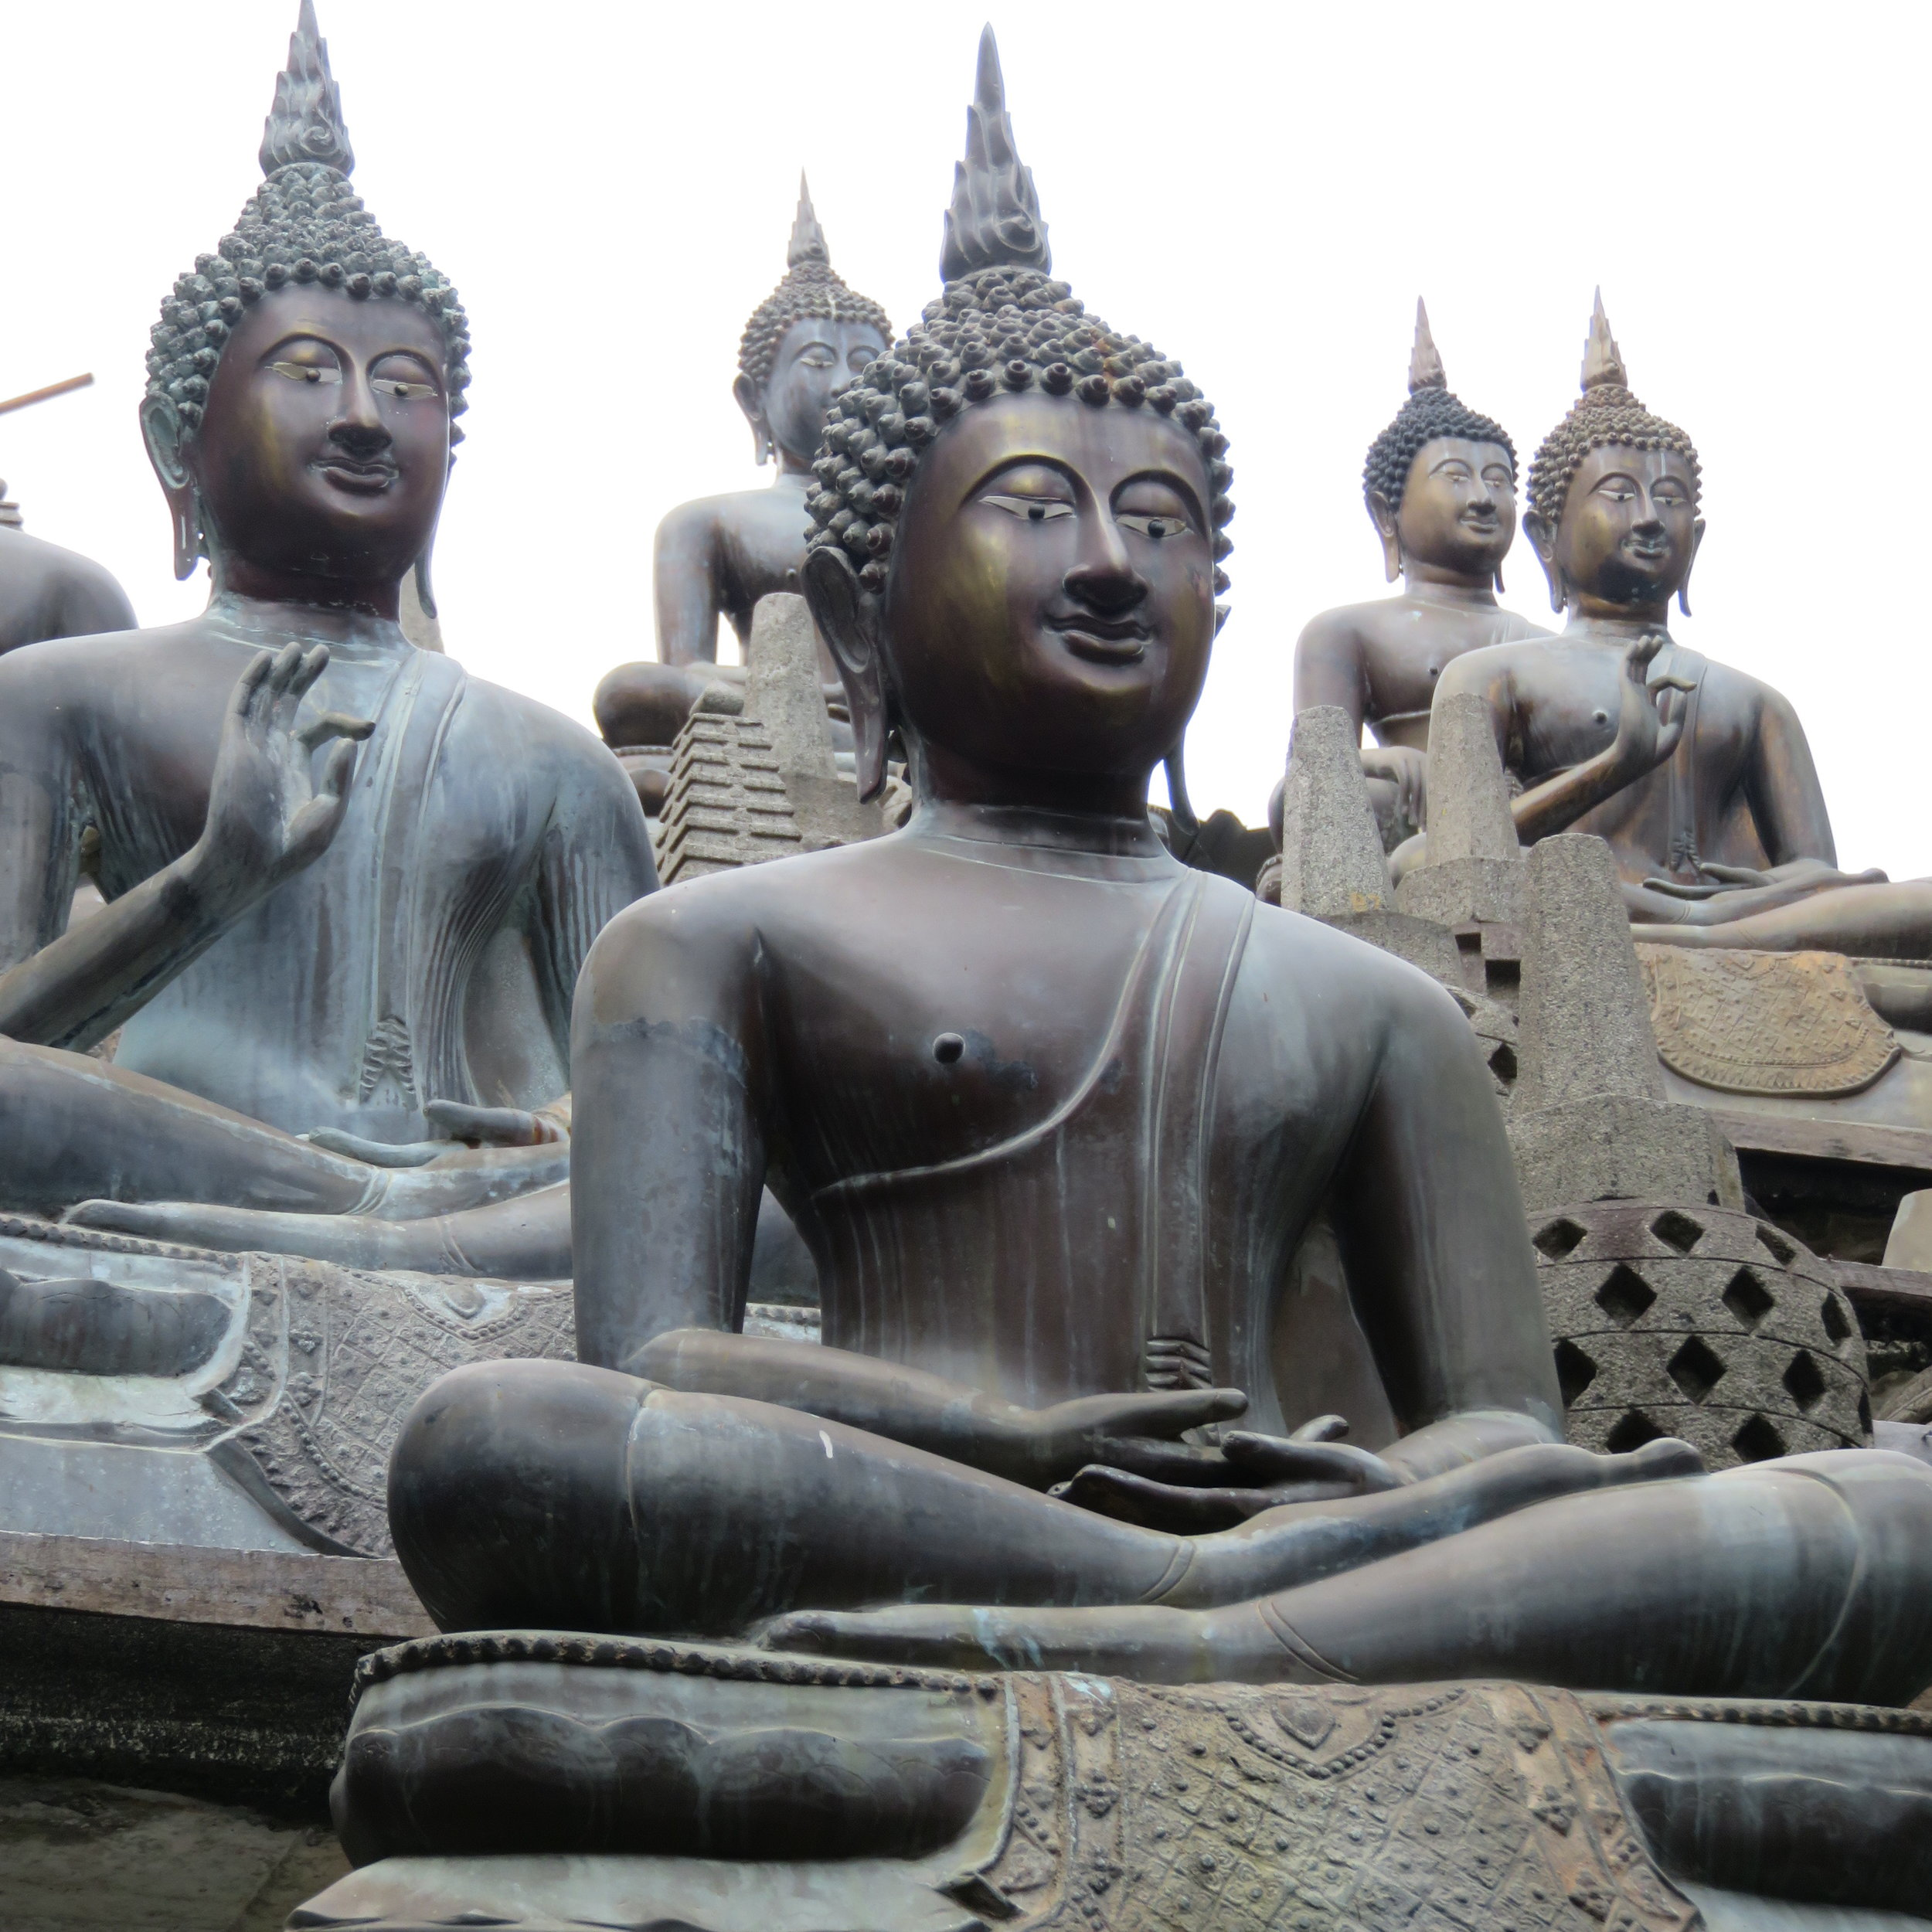 invite-to-paradise-sri-lanka-specialists-thomas-family-holiday-tour-buddhas.JPG